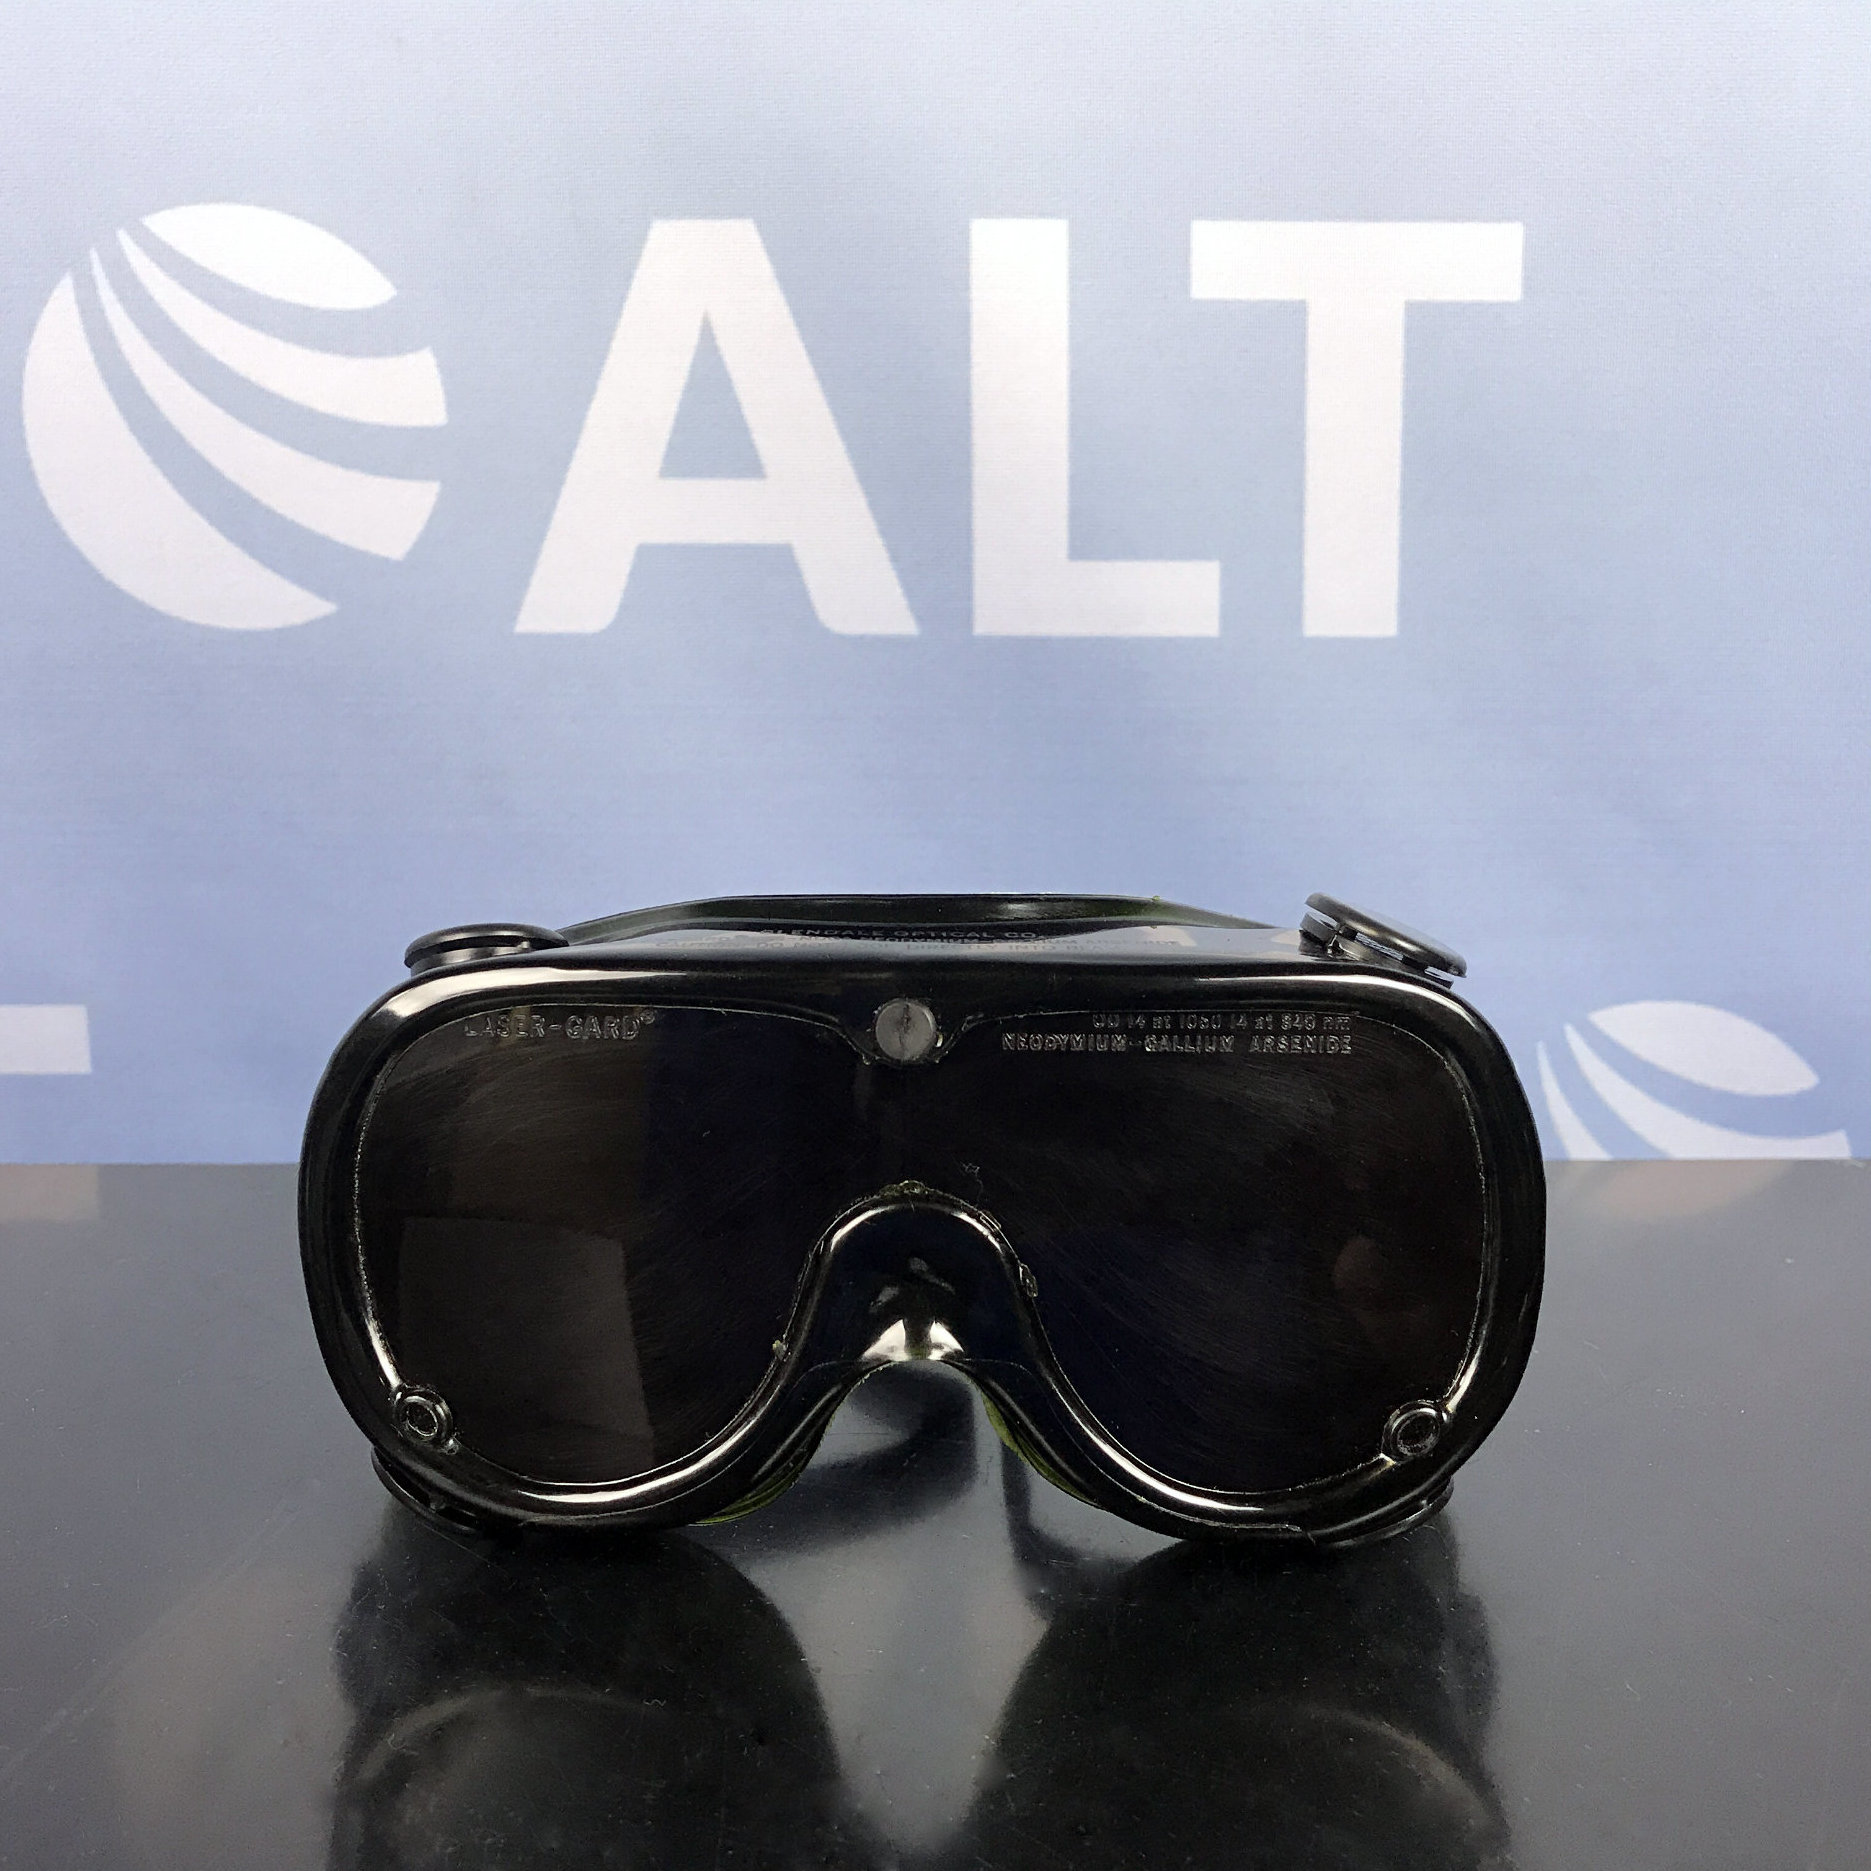 Glendale Optical  Laser-Gard Anti-Laser Safety Goggles OD 14 AT 1060 14 AT 840nm Gallium Arsenide (Neodymium) Image